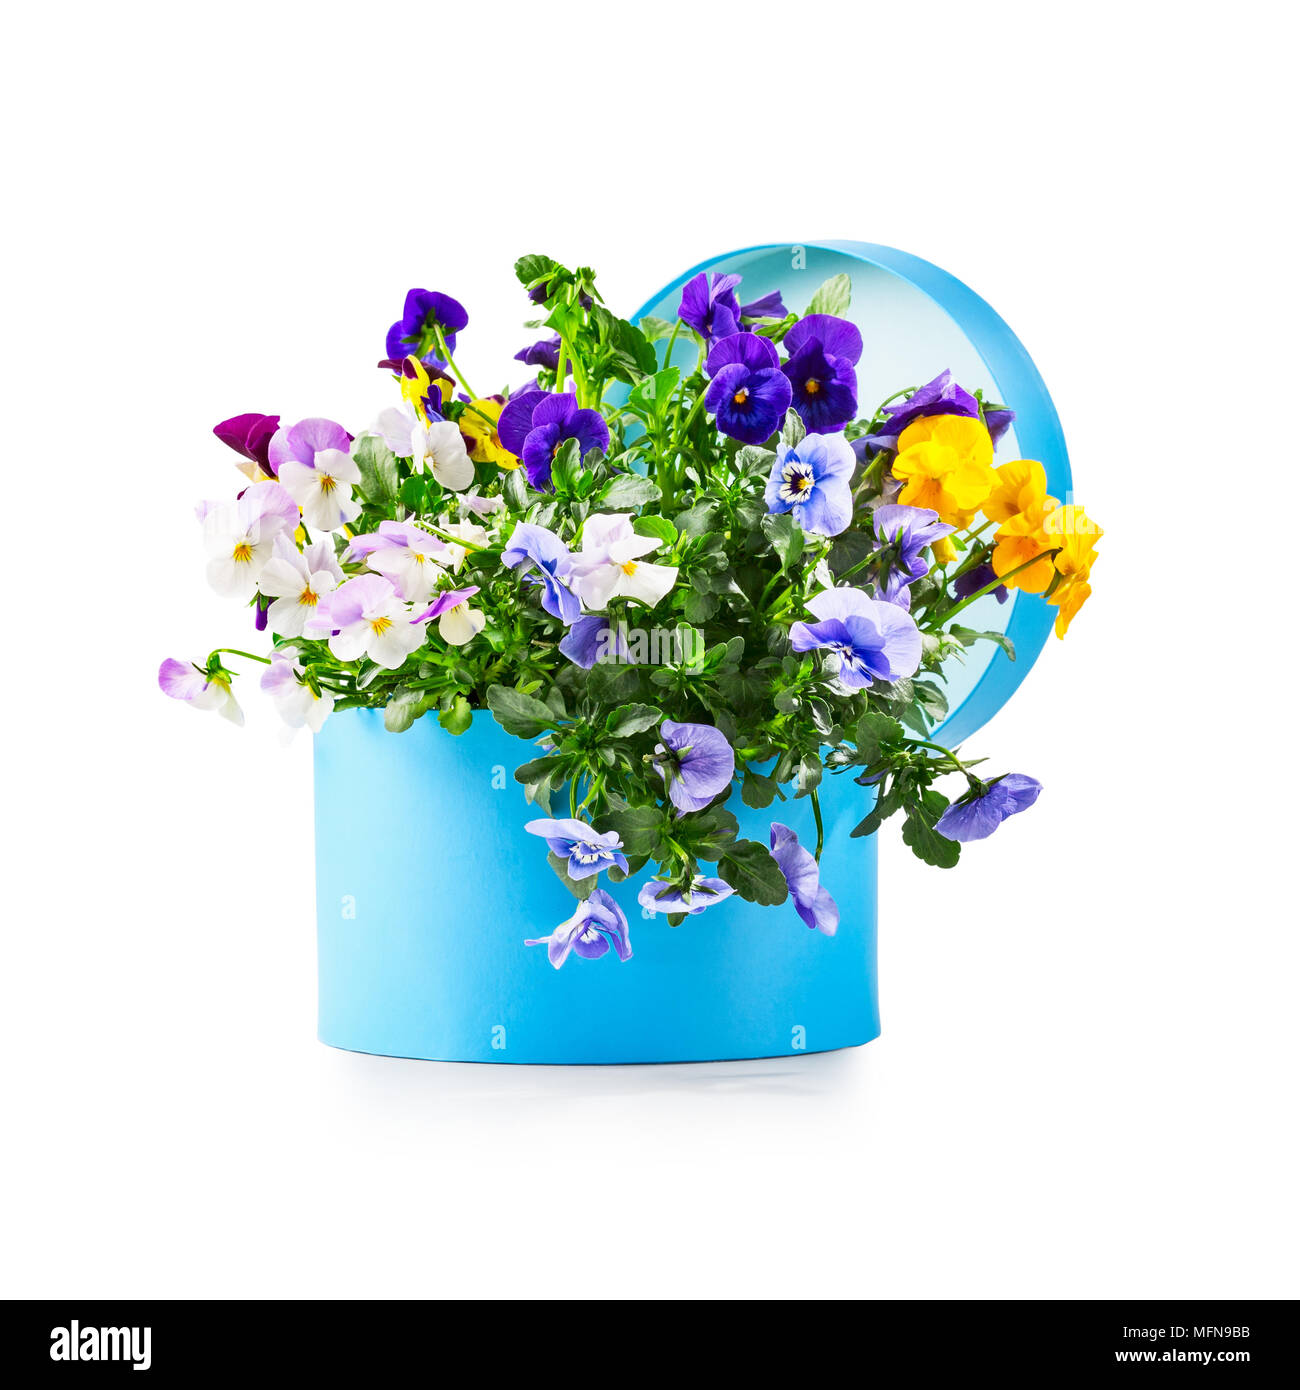 Blue gift box with pansy flowers isolated on white background clipping path included. Spring garden viola tricolor as holiday present and mothers day  Stock Photo